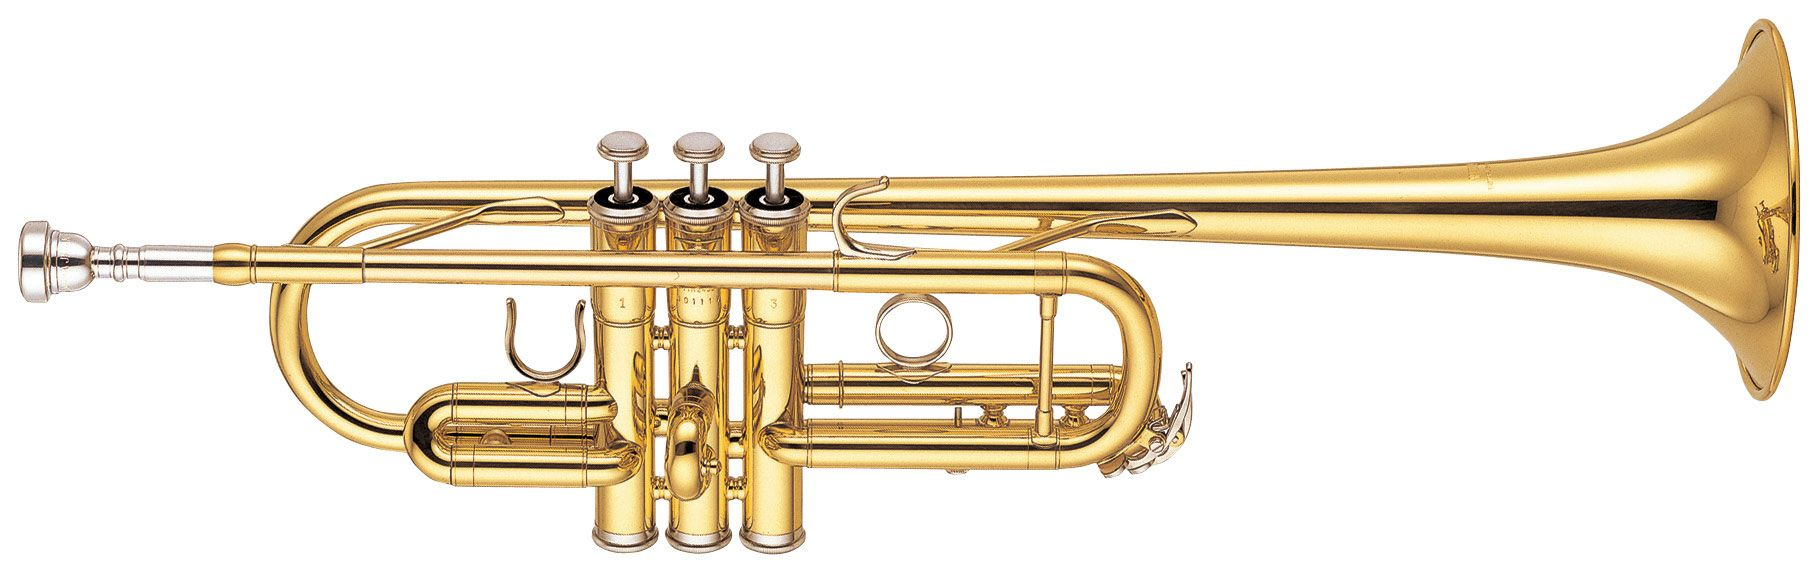 Brass instruments are named so, not because all of them are made from brass, but due to the nature and texture of the sound they produce. They work with close to the same principles as wind instruments except for a few modifications here and there.